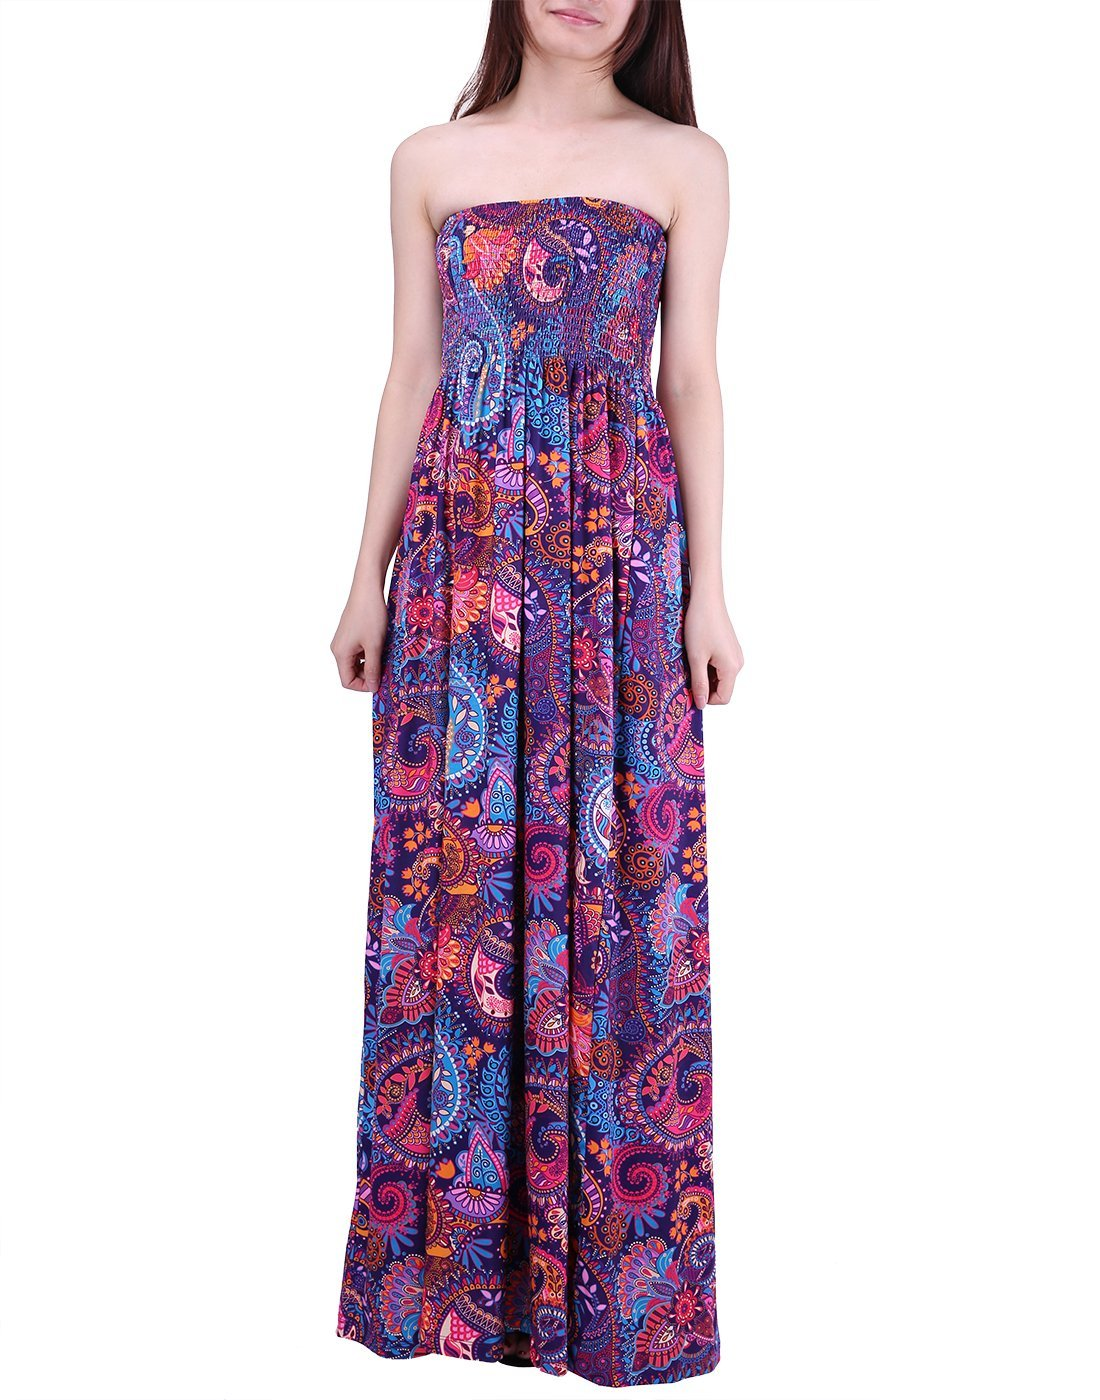 HDE Women's Strapless Maxi Dress Plus Size Tube Top Long Skirt Sundress Cover up (Purple Paisley, 2X) by HDE (Image #1)